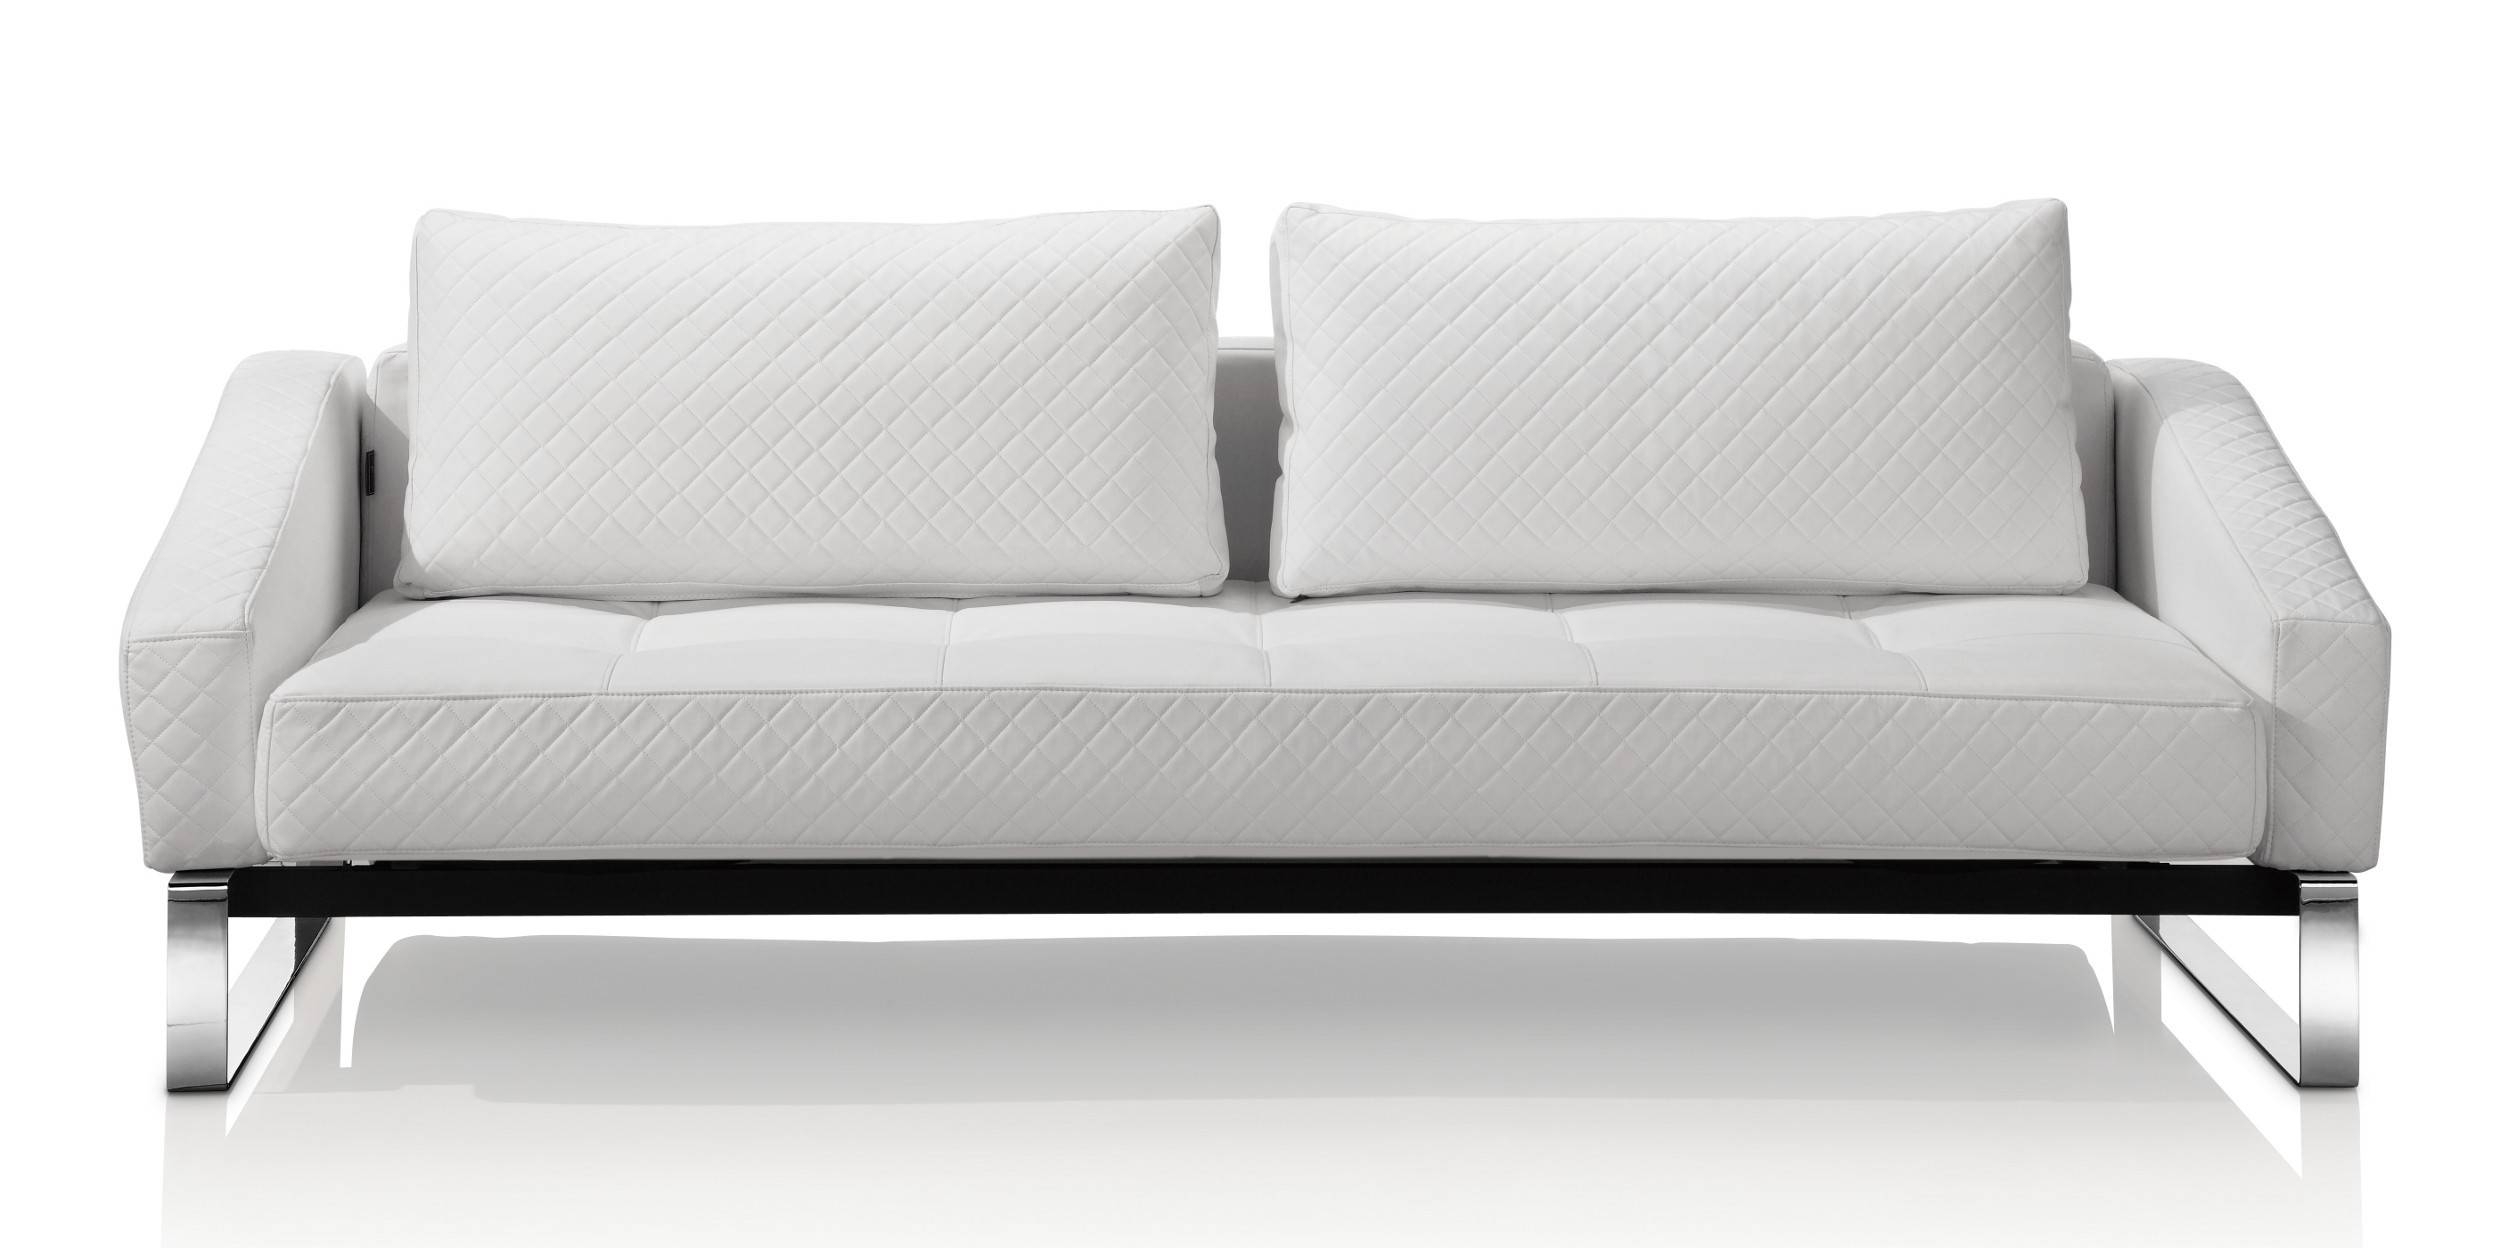 Furniture : Contemporary Sofa Bed Furniture For Modern Living Room inside White Modern Sofas (Image 8 of 30)